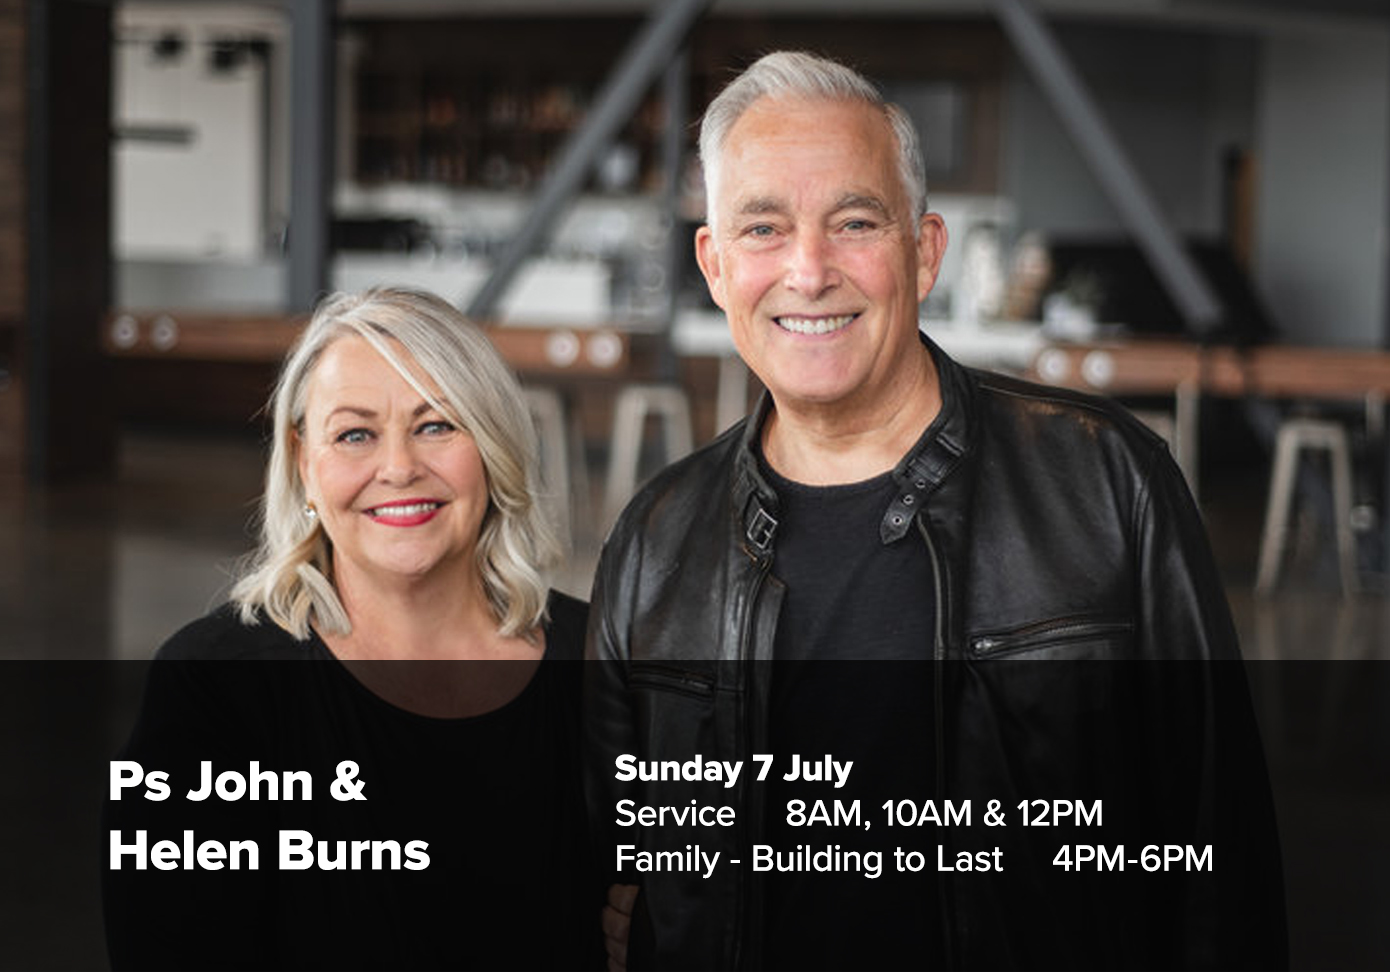 - Ps John and Helen have seen the faithfulness of God as their own broken marriage has been restored, and they speak with wisdom and authority on building healthy relationships. They travel extensively mentoring leaders and sharing their life message with churches and organizations globally.